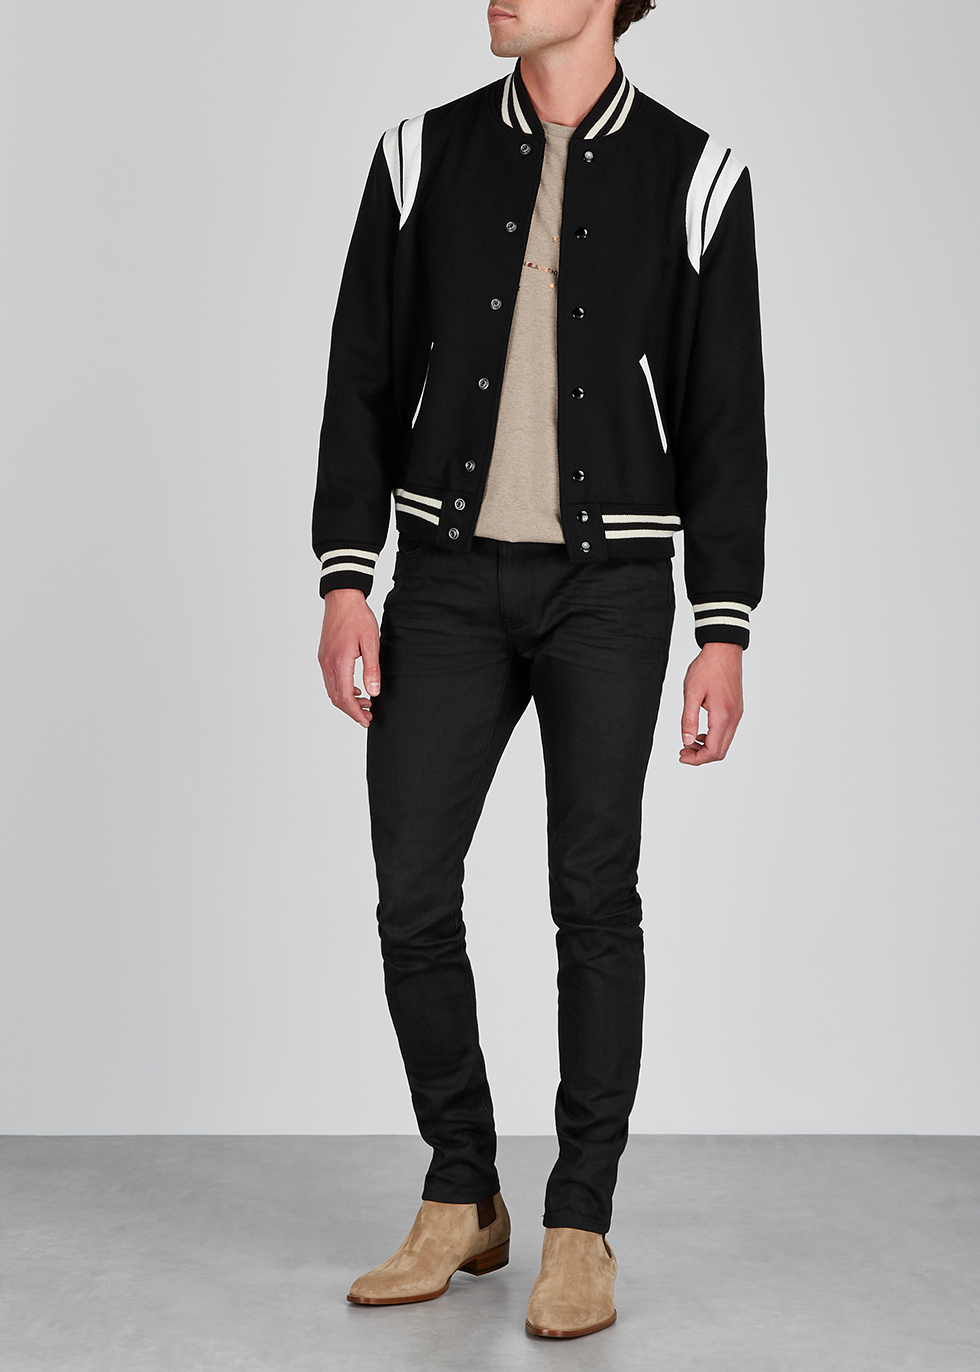 3b968ef70 Saint Laurent Teddy wool-blend bomber jacket - Harvey Nichols